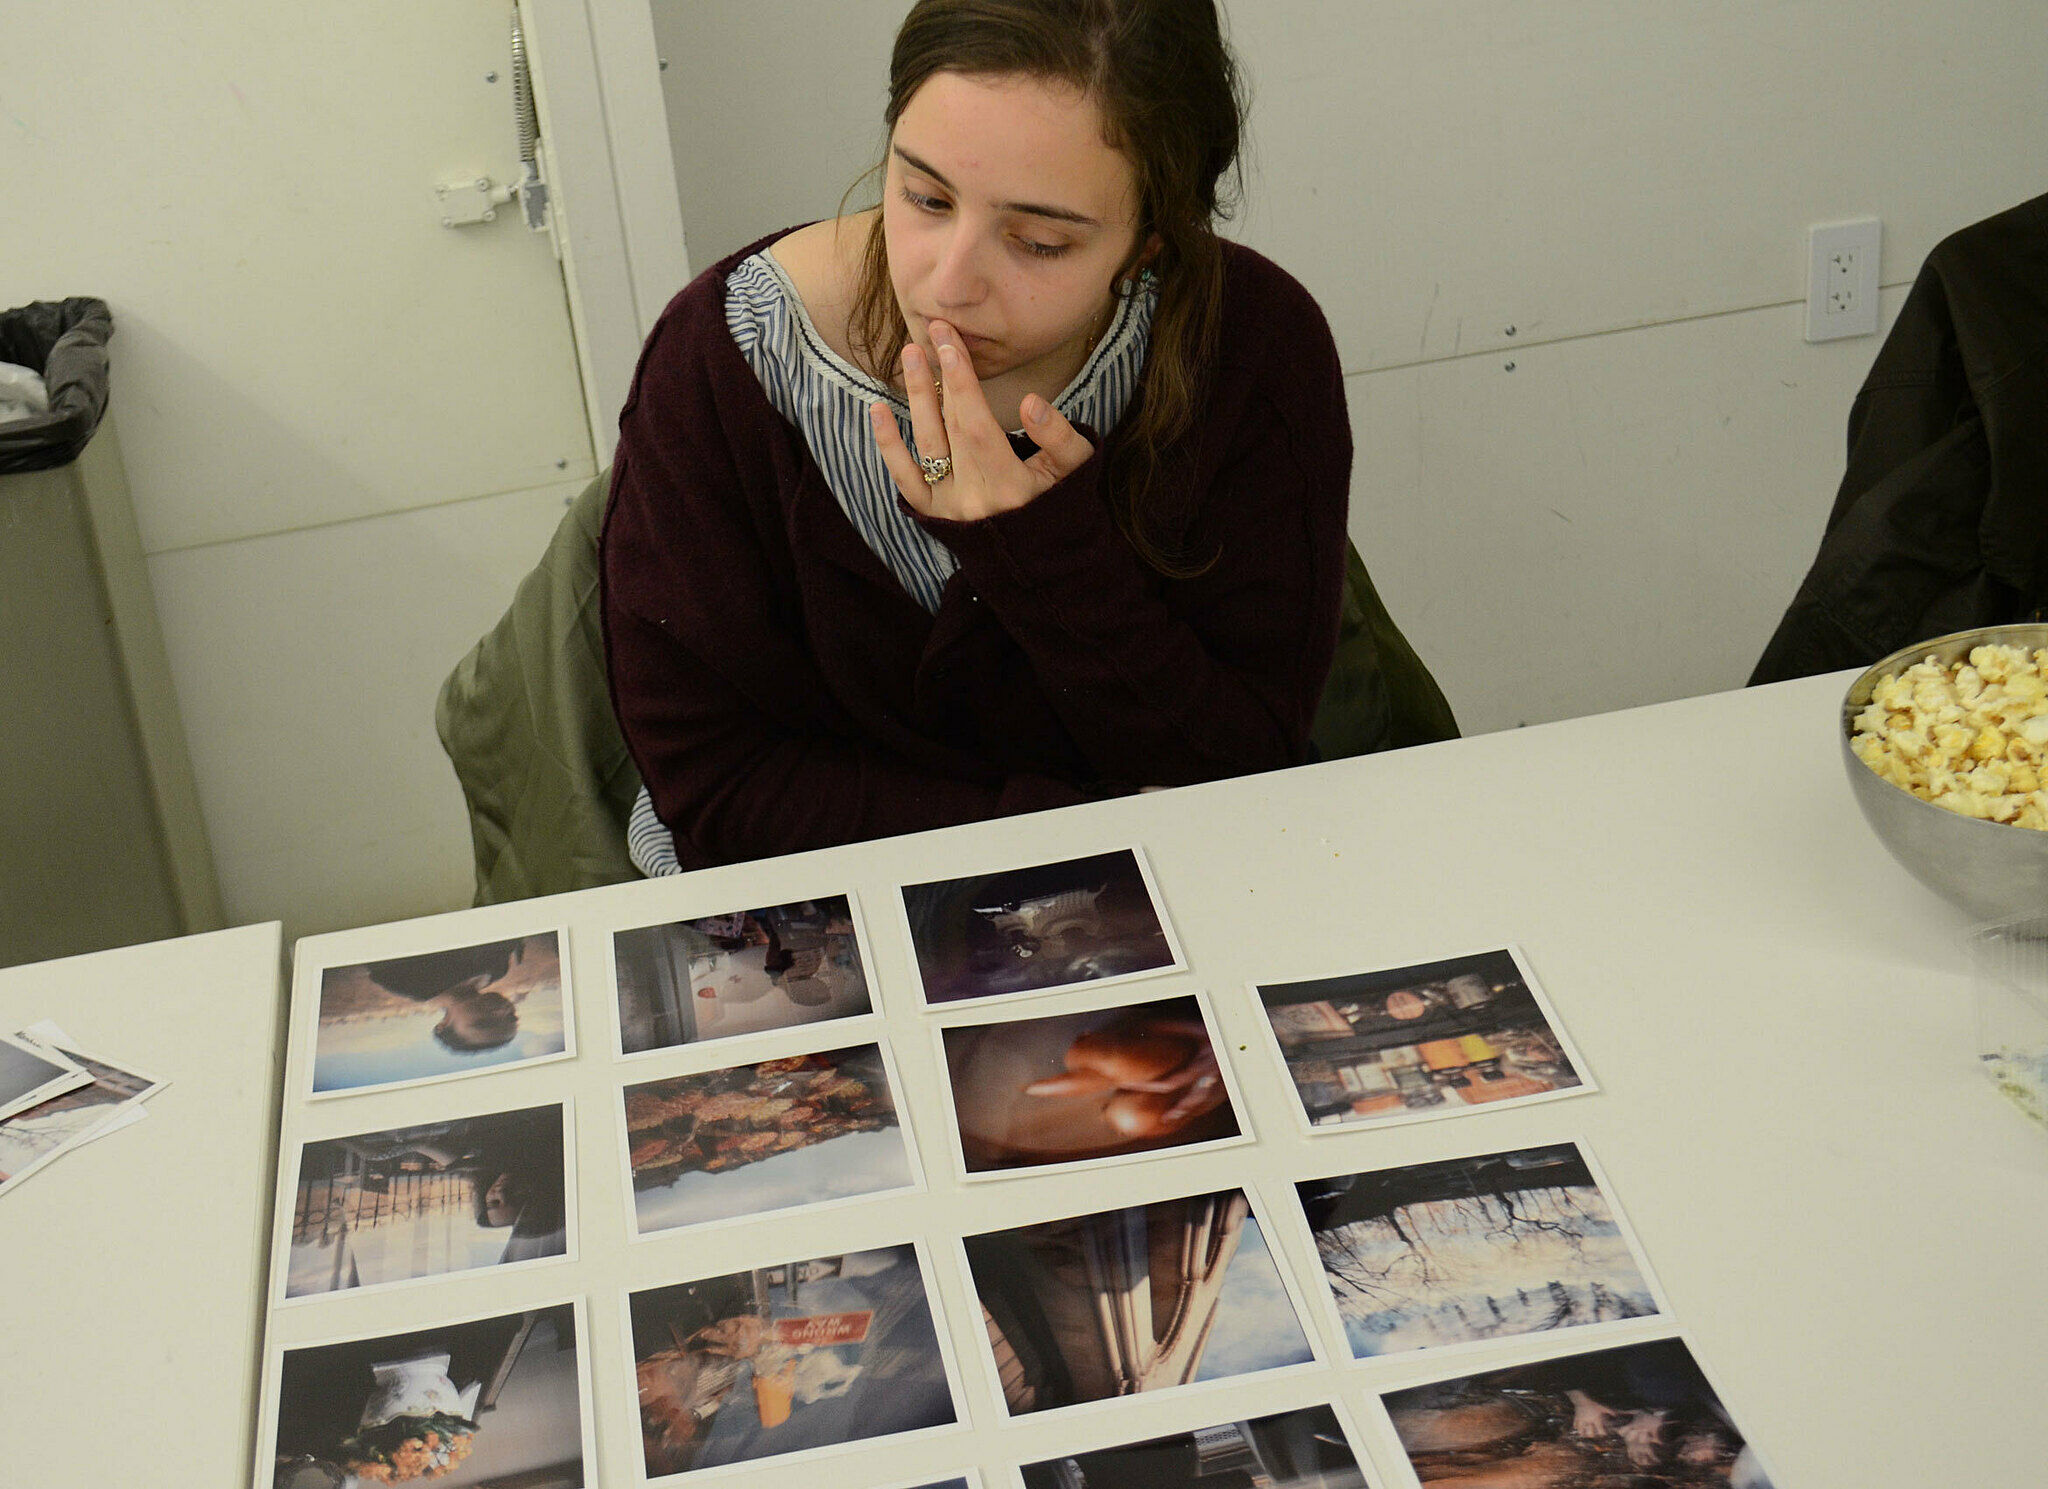 Student looking at grid of pictures on table.